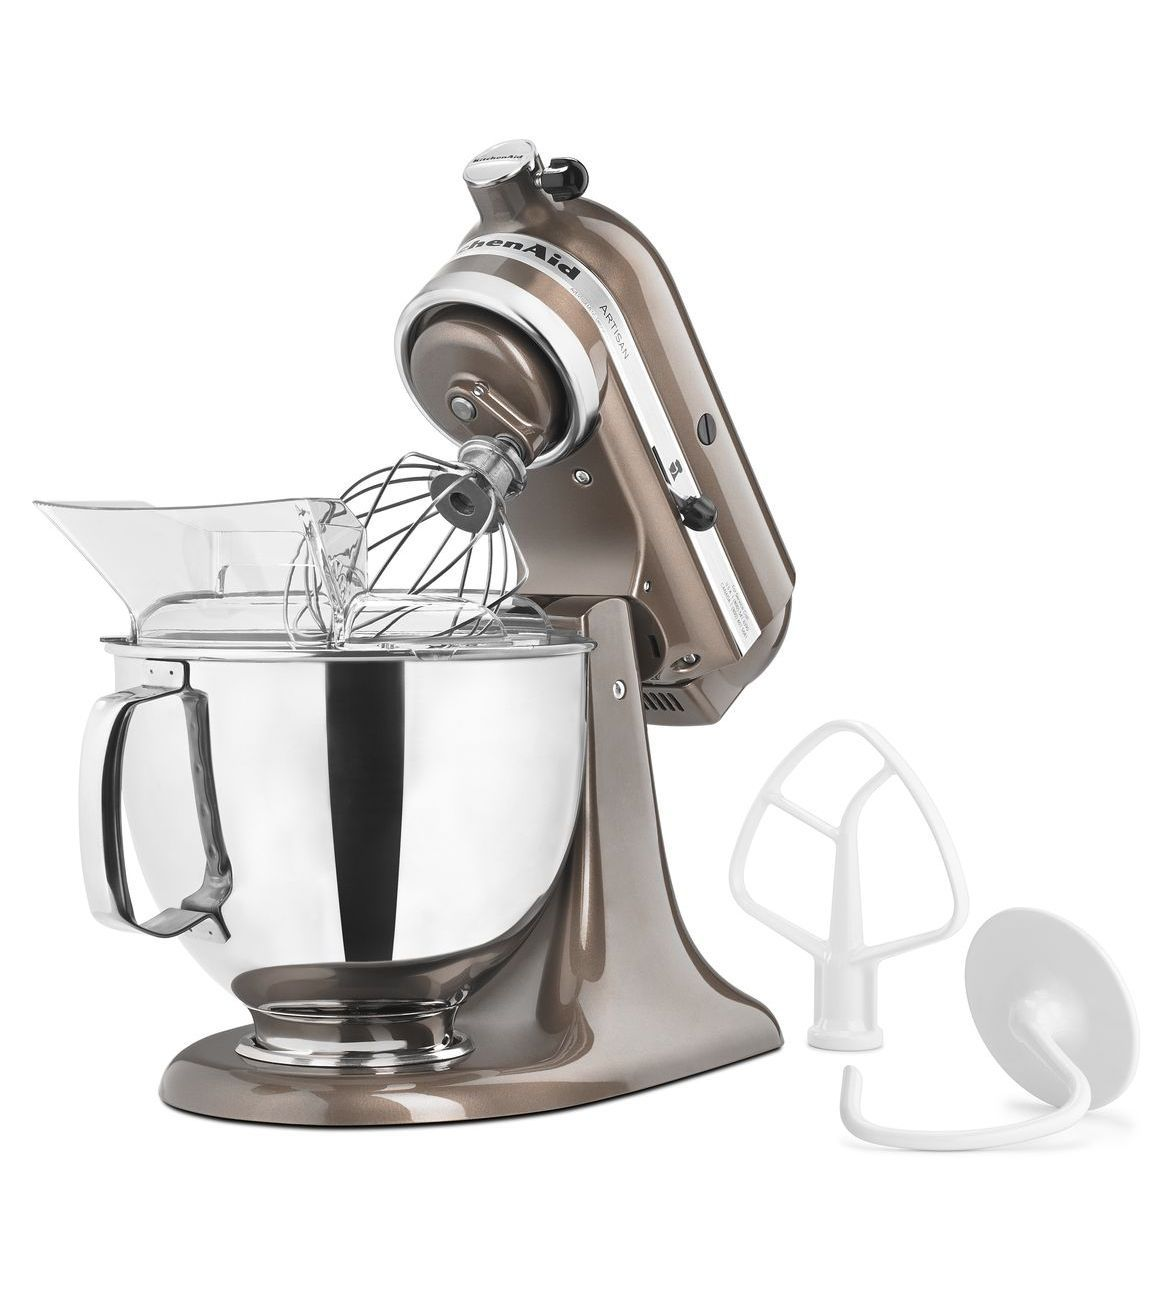 KitchenAid® Artisan® Series 5 Quart Tilt Head Stand Mixer (KSM150PSER Color